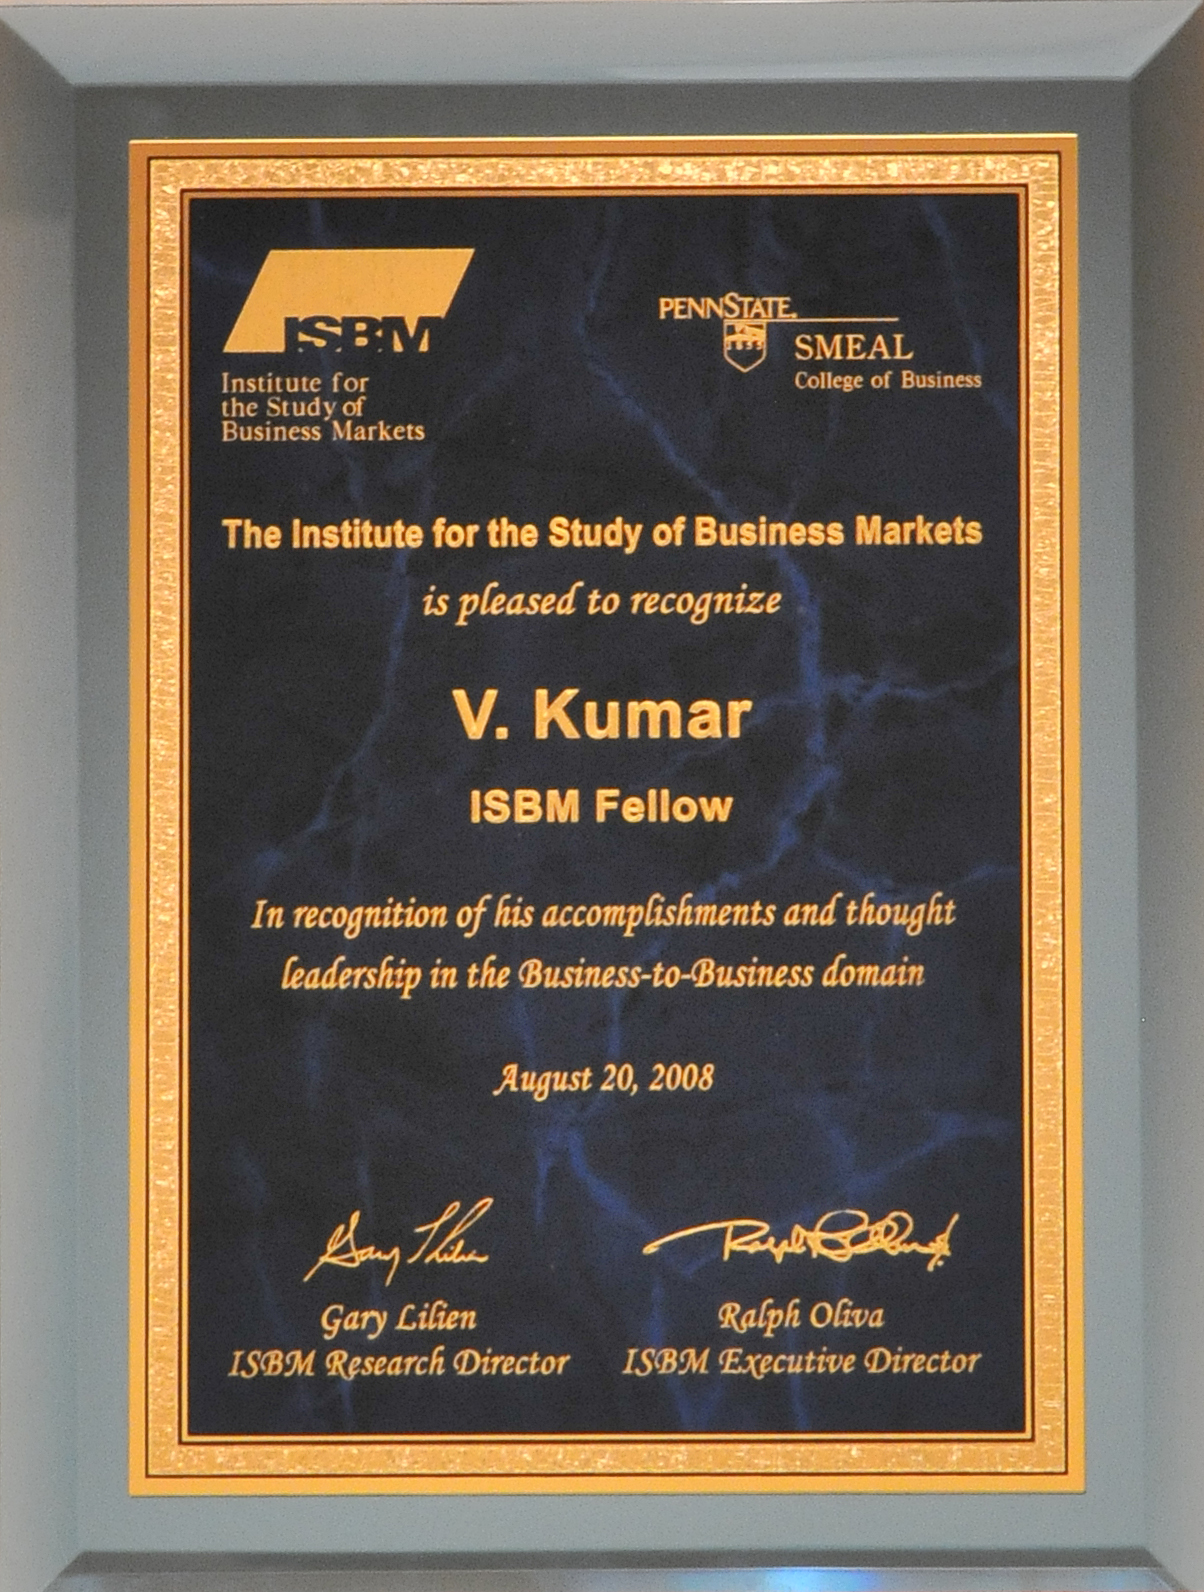 Lifetime award from the Institute of Study for Business Markets at Penn State University